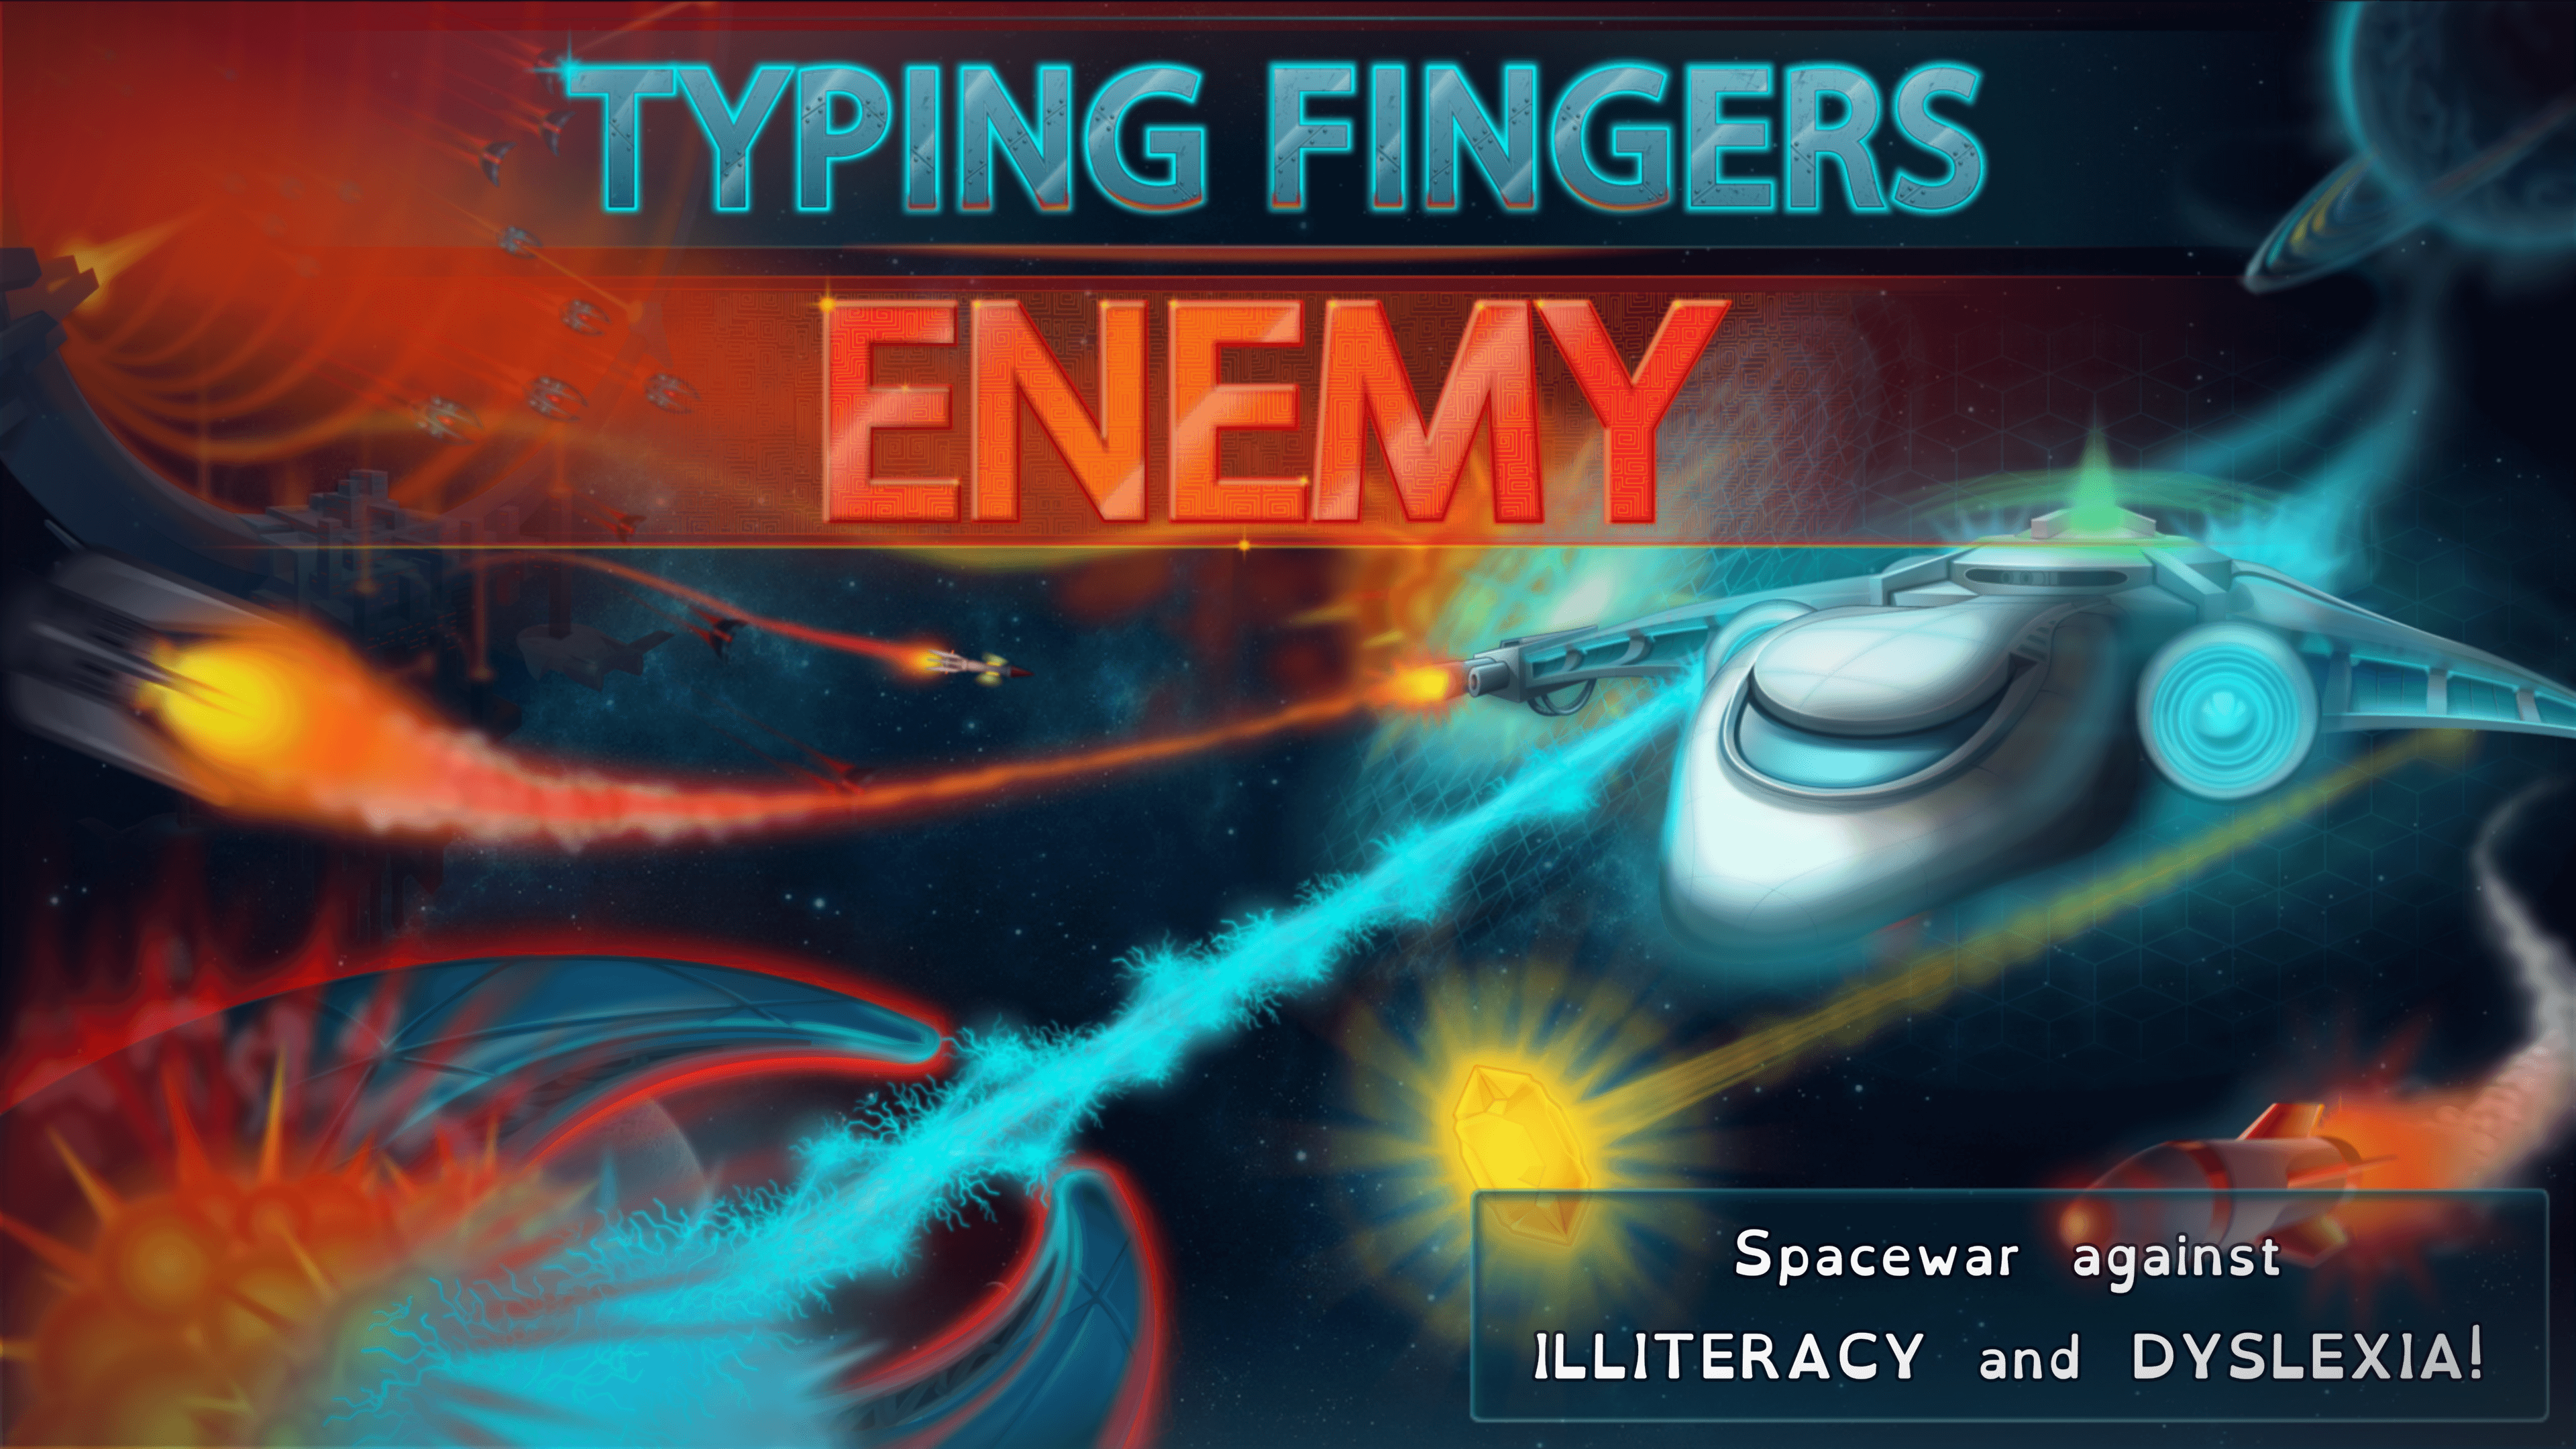 Space war against illiteracy and dyslexia